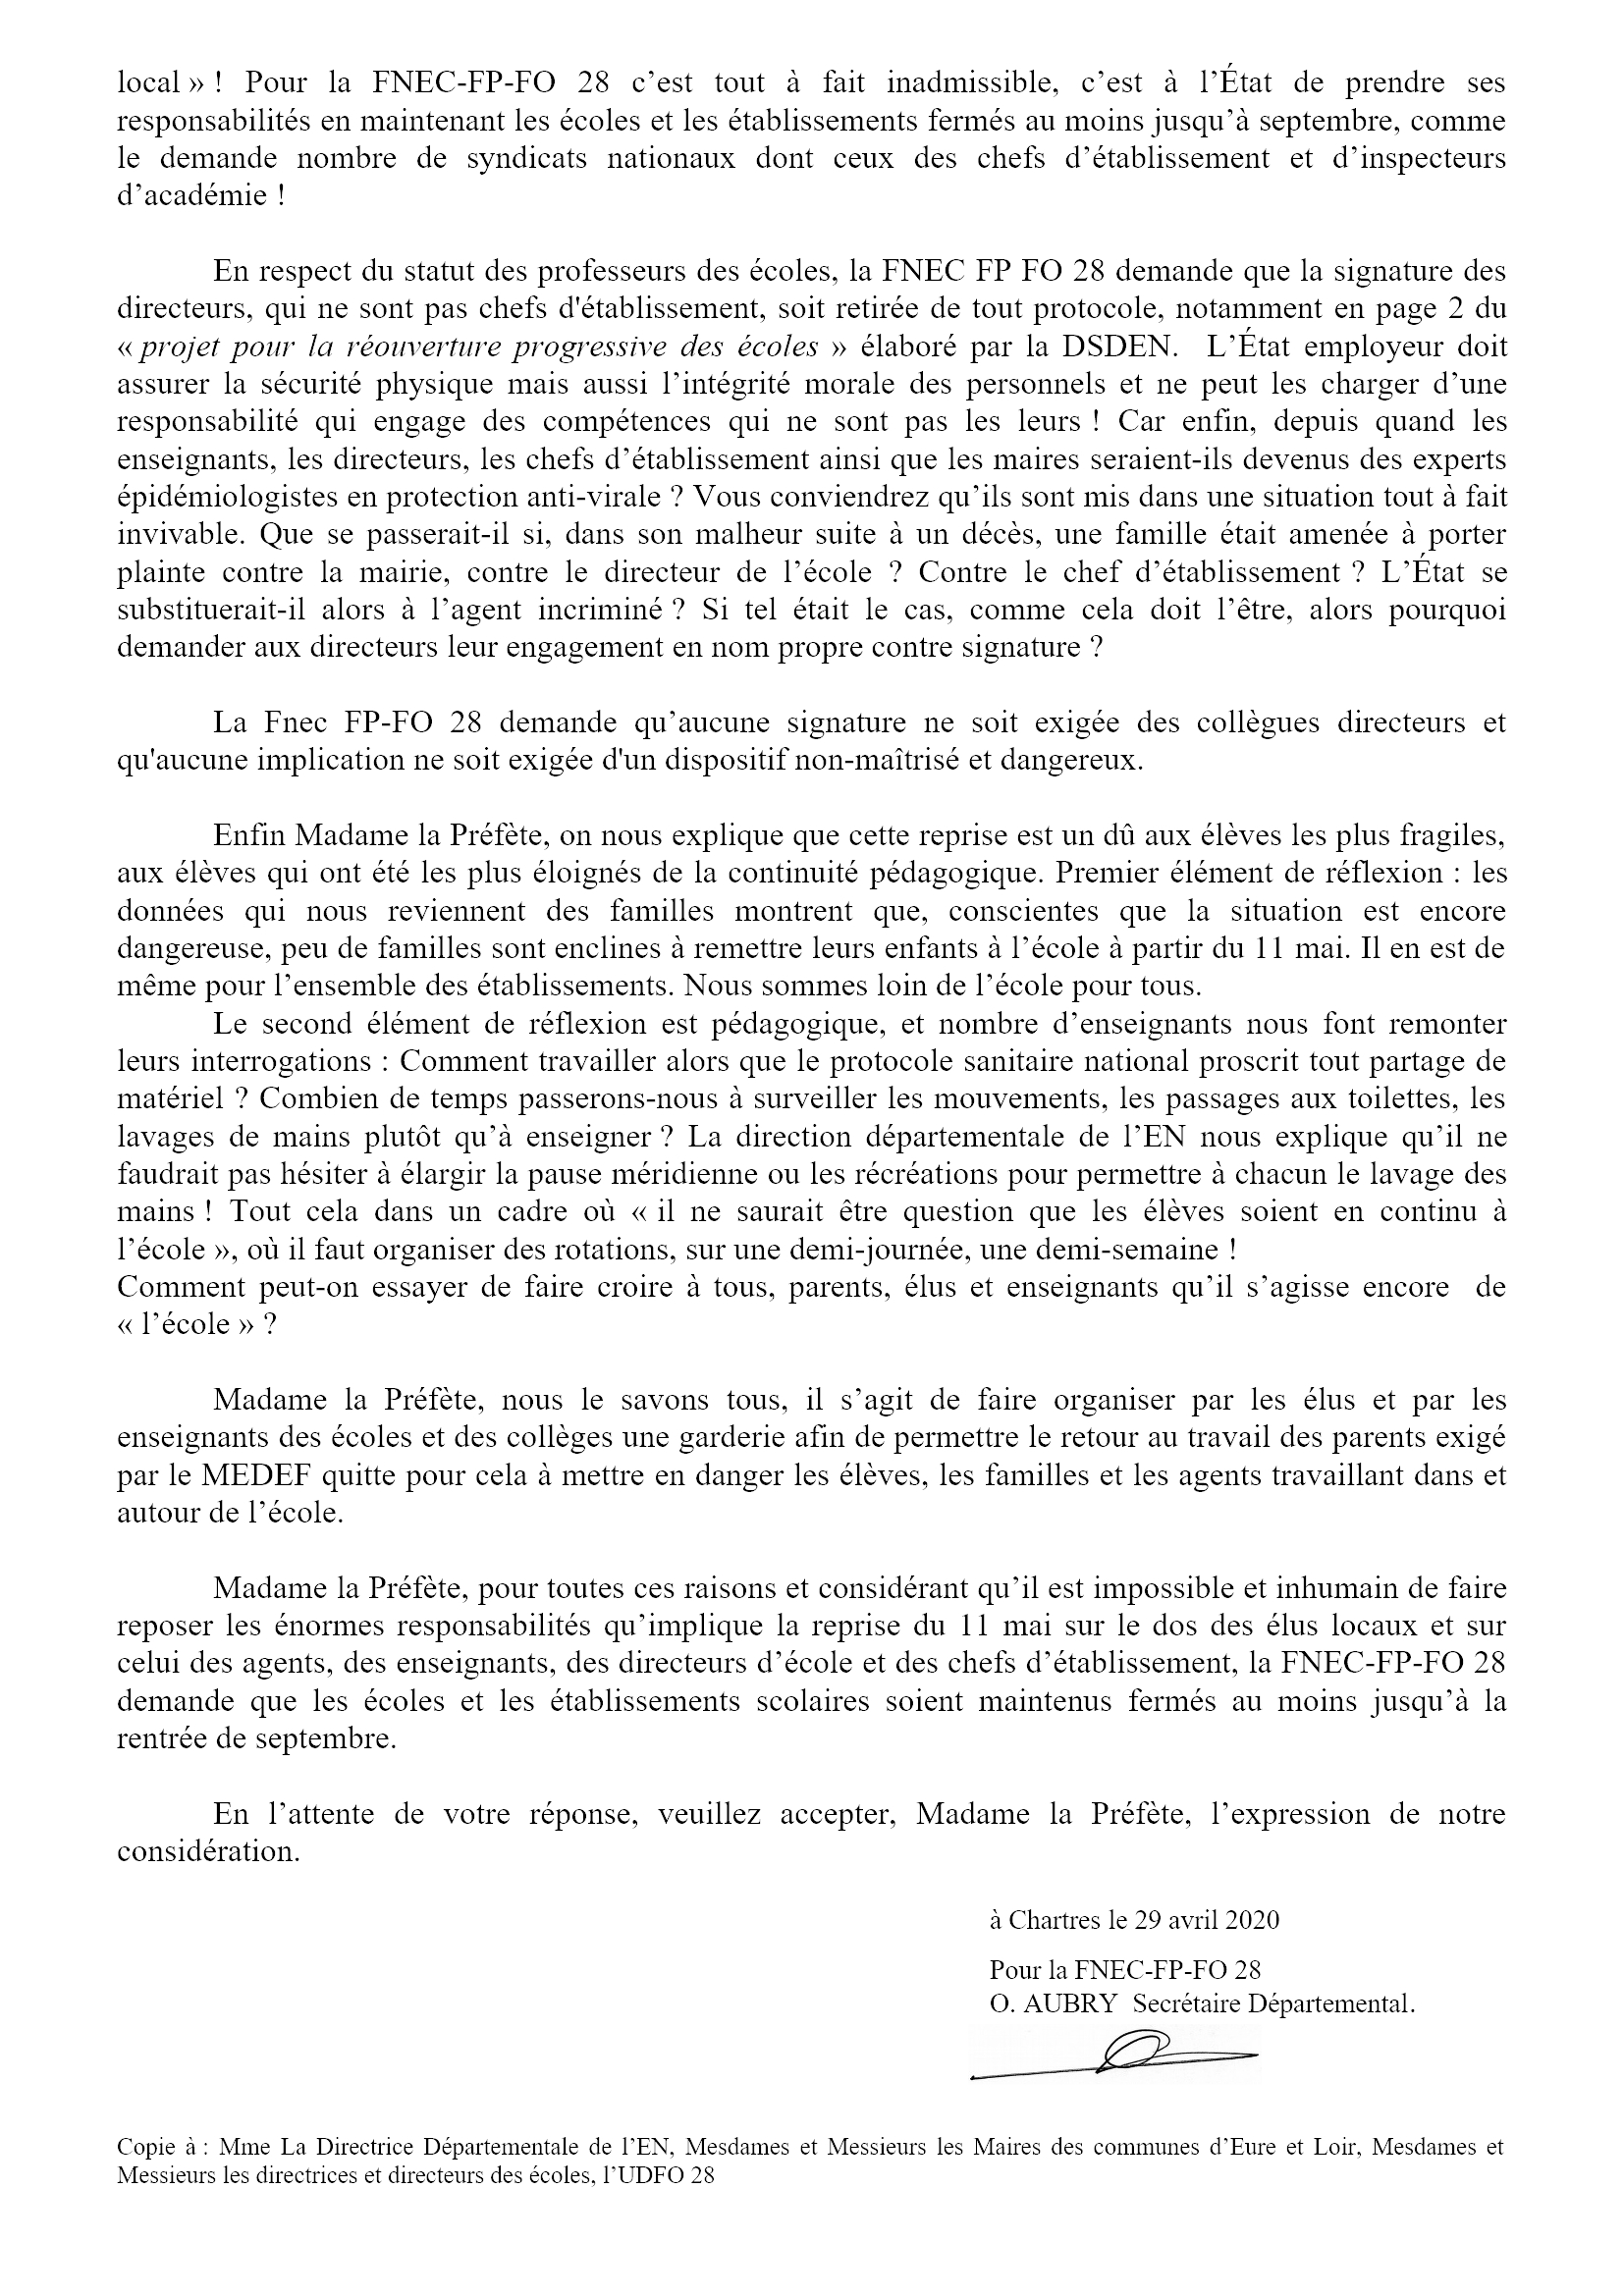 FNEC FP FO 28_courrier_prefecture 28-04-2020 2x2